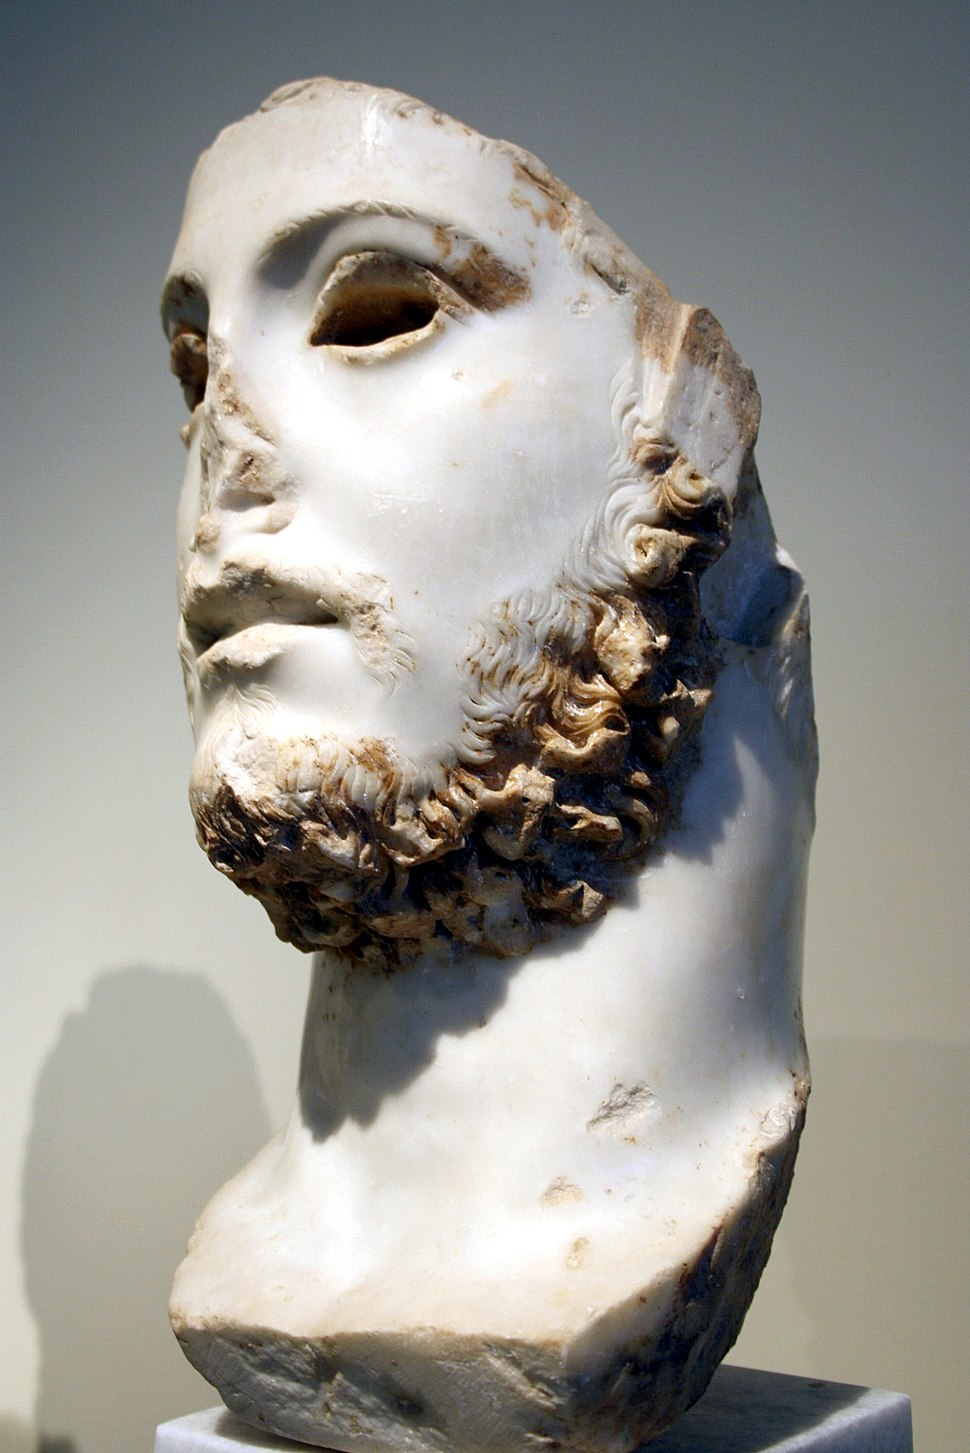 1699 - Archaeological Museum, Athens - A youth, possibly Commodus - Photo by Giovanni Dall'Orto, Nov 11 2009